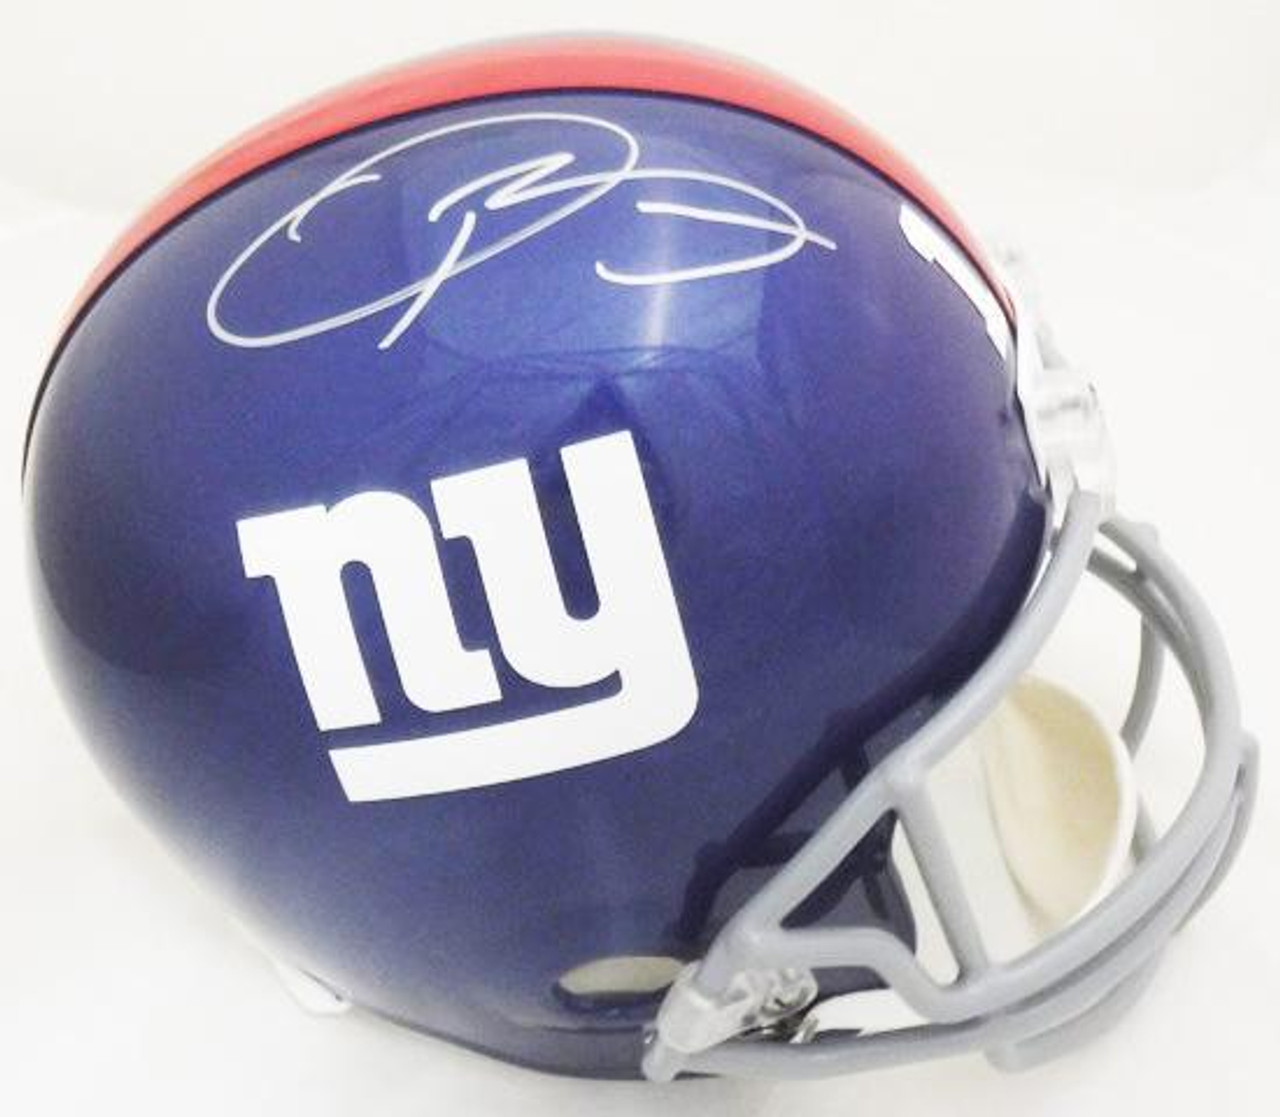 fbf70c0a Odell Beckham Jr New York Giants Autographed Decaled Full Size Replica  Helmet - Maverick Autographs and Collectibles